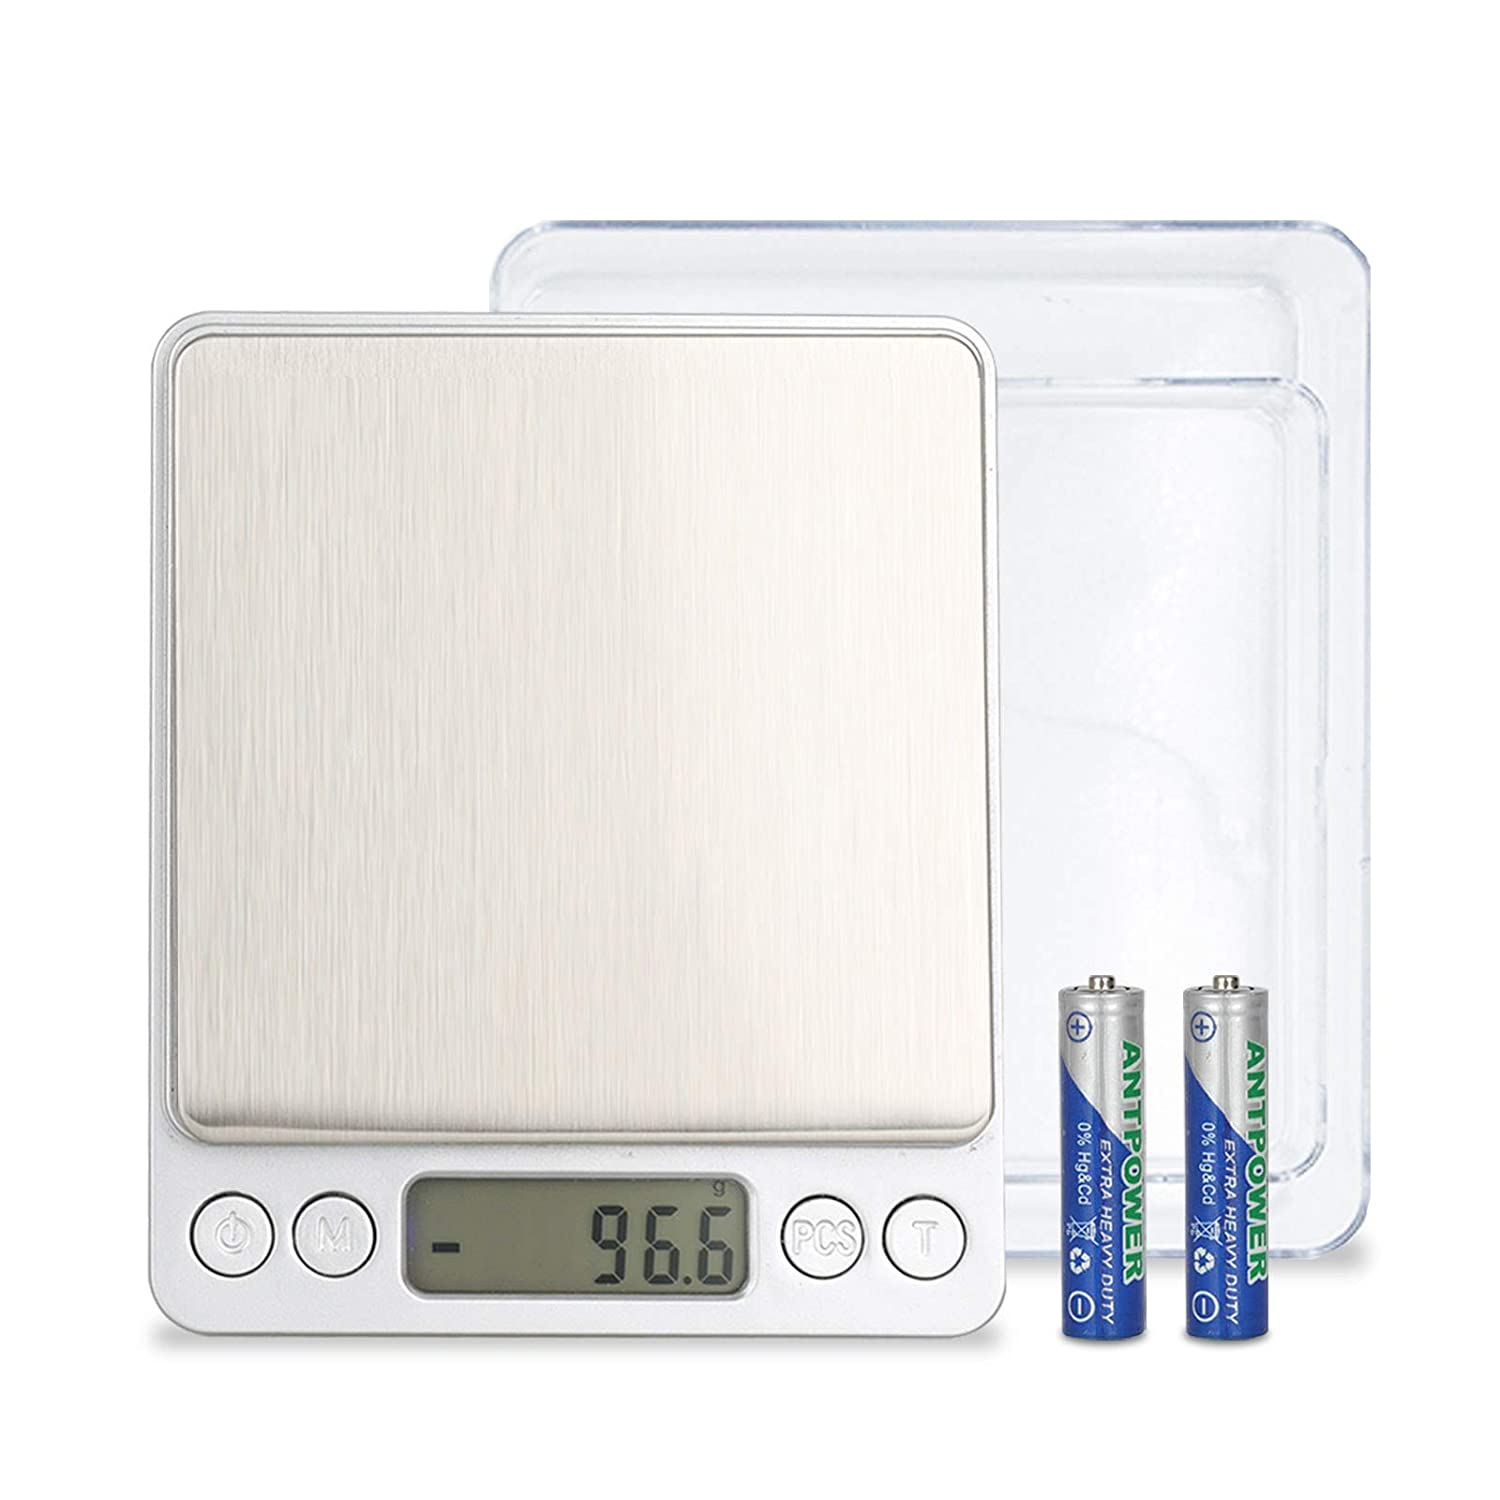 Digital Kitchen Scale ,3kg/0.1g Stainless Steel Food Scale with Backlit LCD Small Jewelry Scale, Food Scales Digital Weight Gram and Oz, Trays,Tare Function, Jewelry Scale for Food, Cooking, Baking